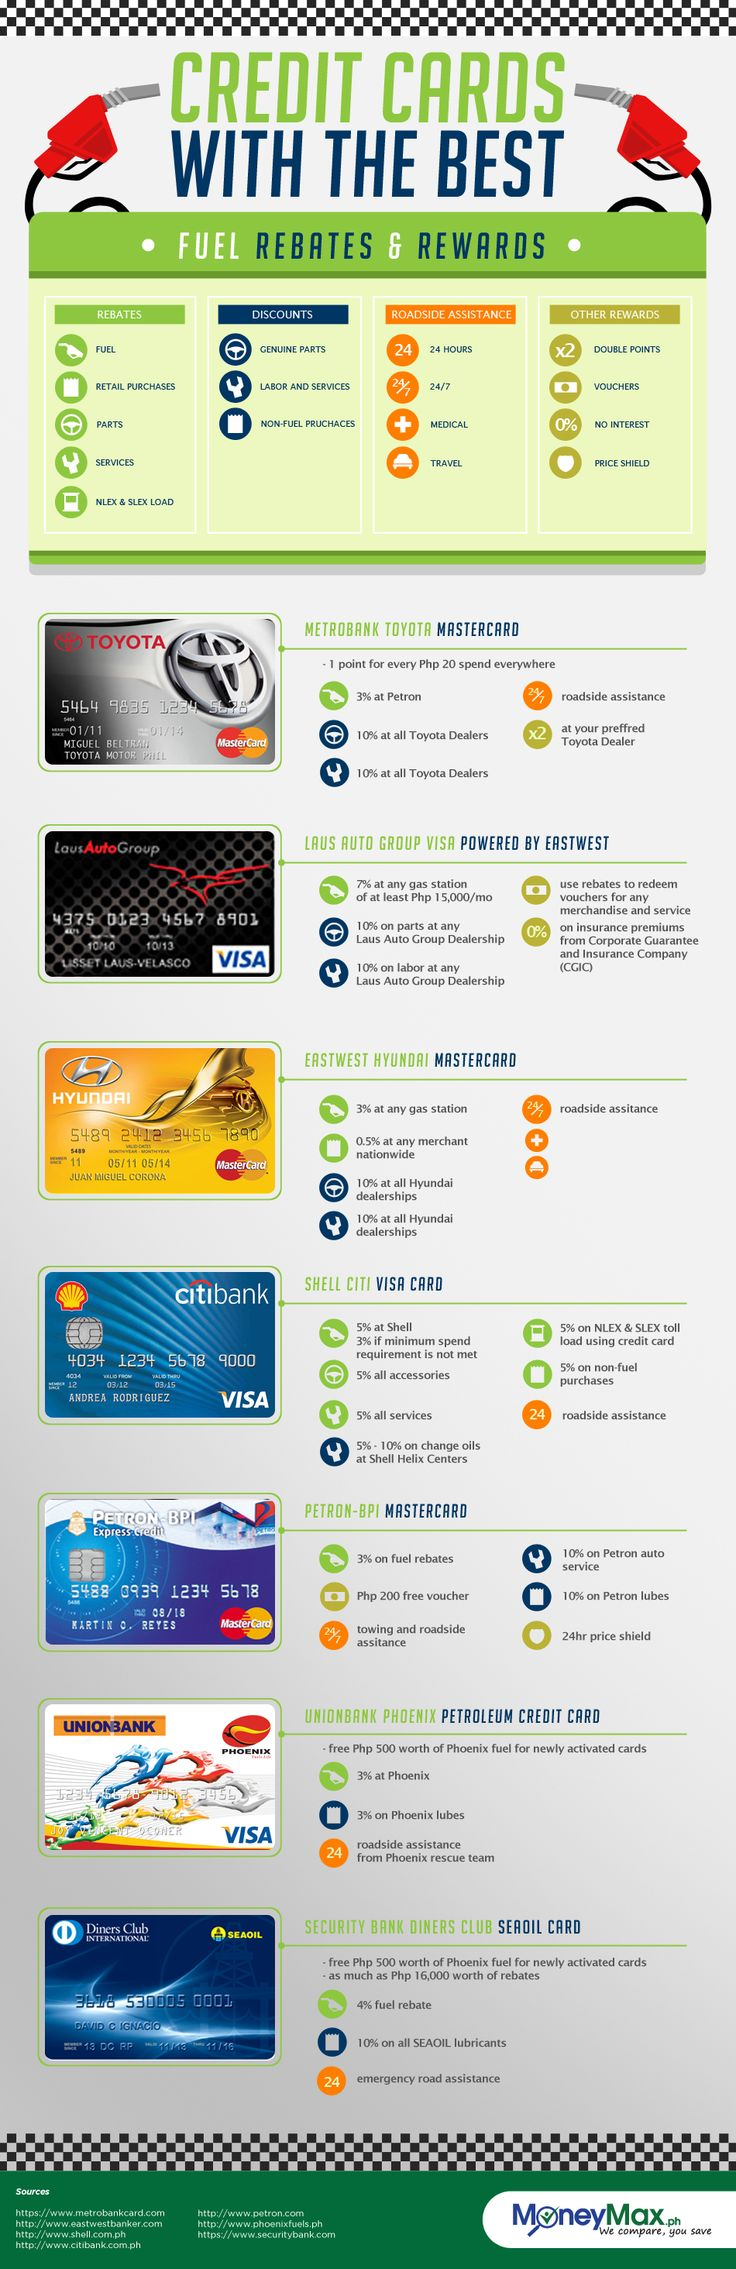 credit cards comparison canada